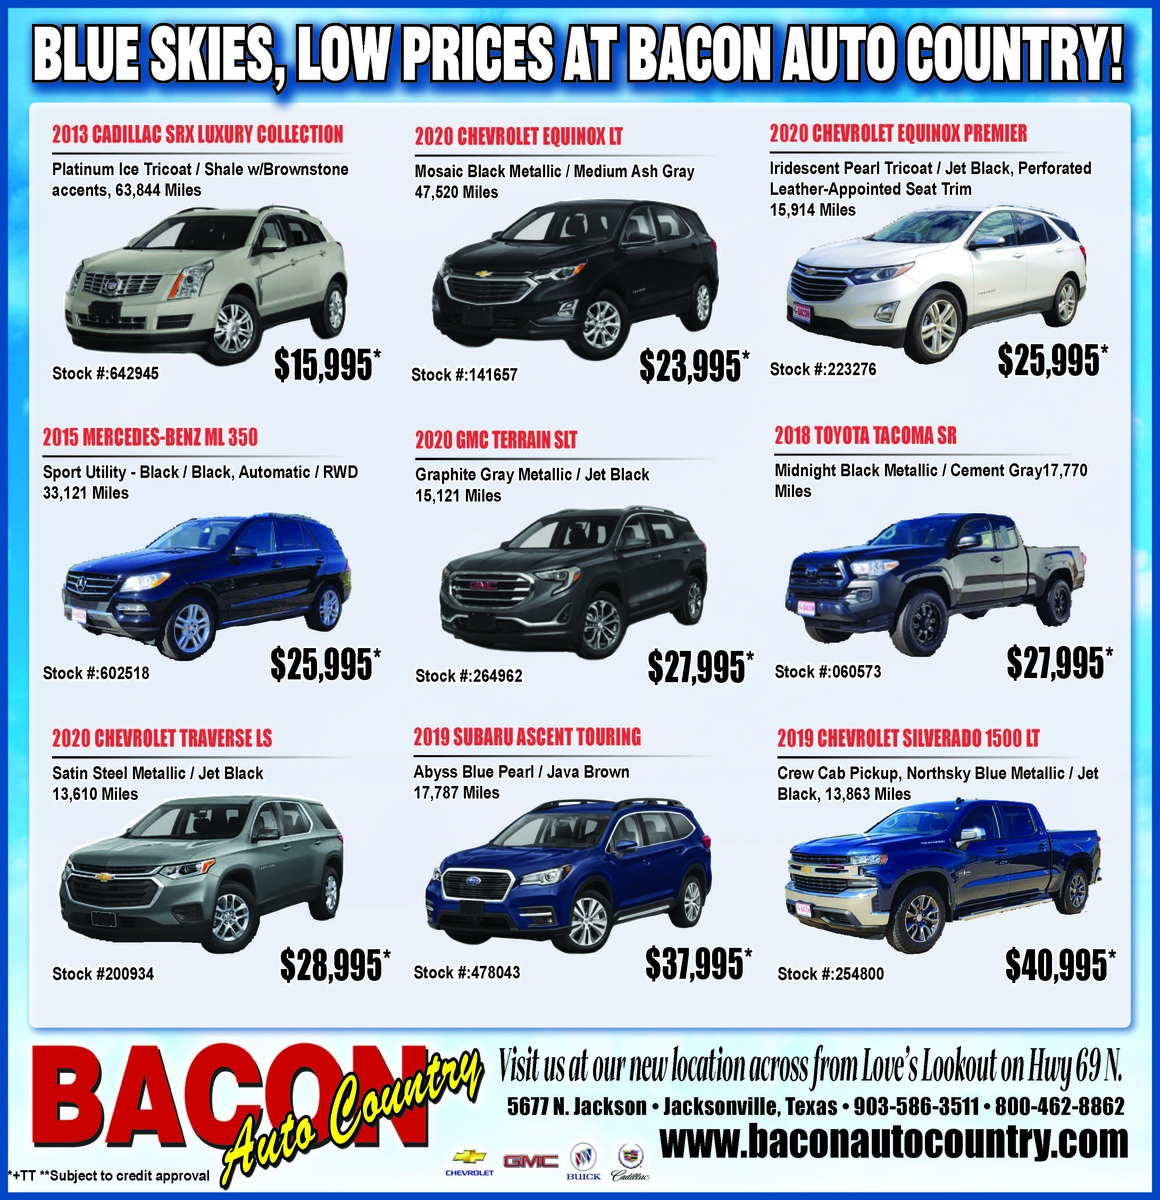 Blue Skies and Low Prices at Bacon Auto Country